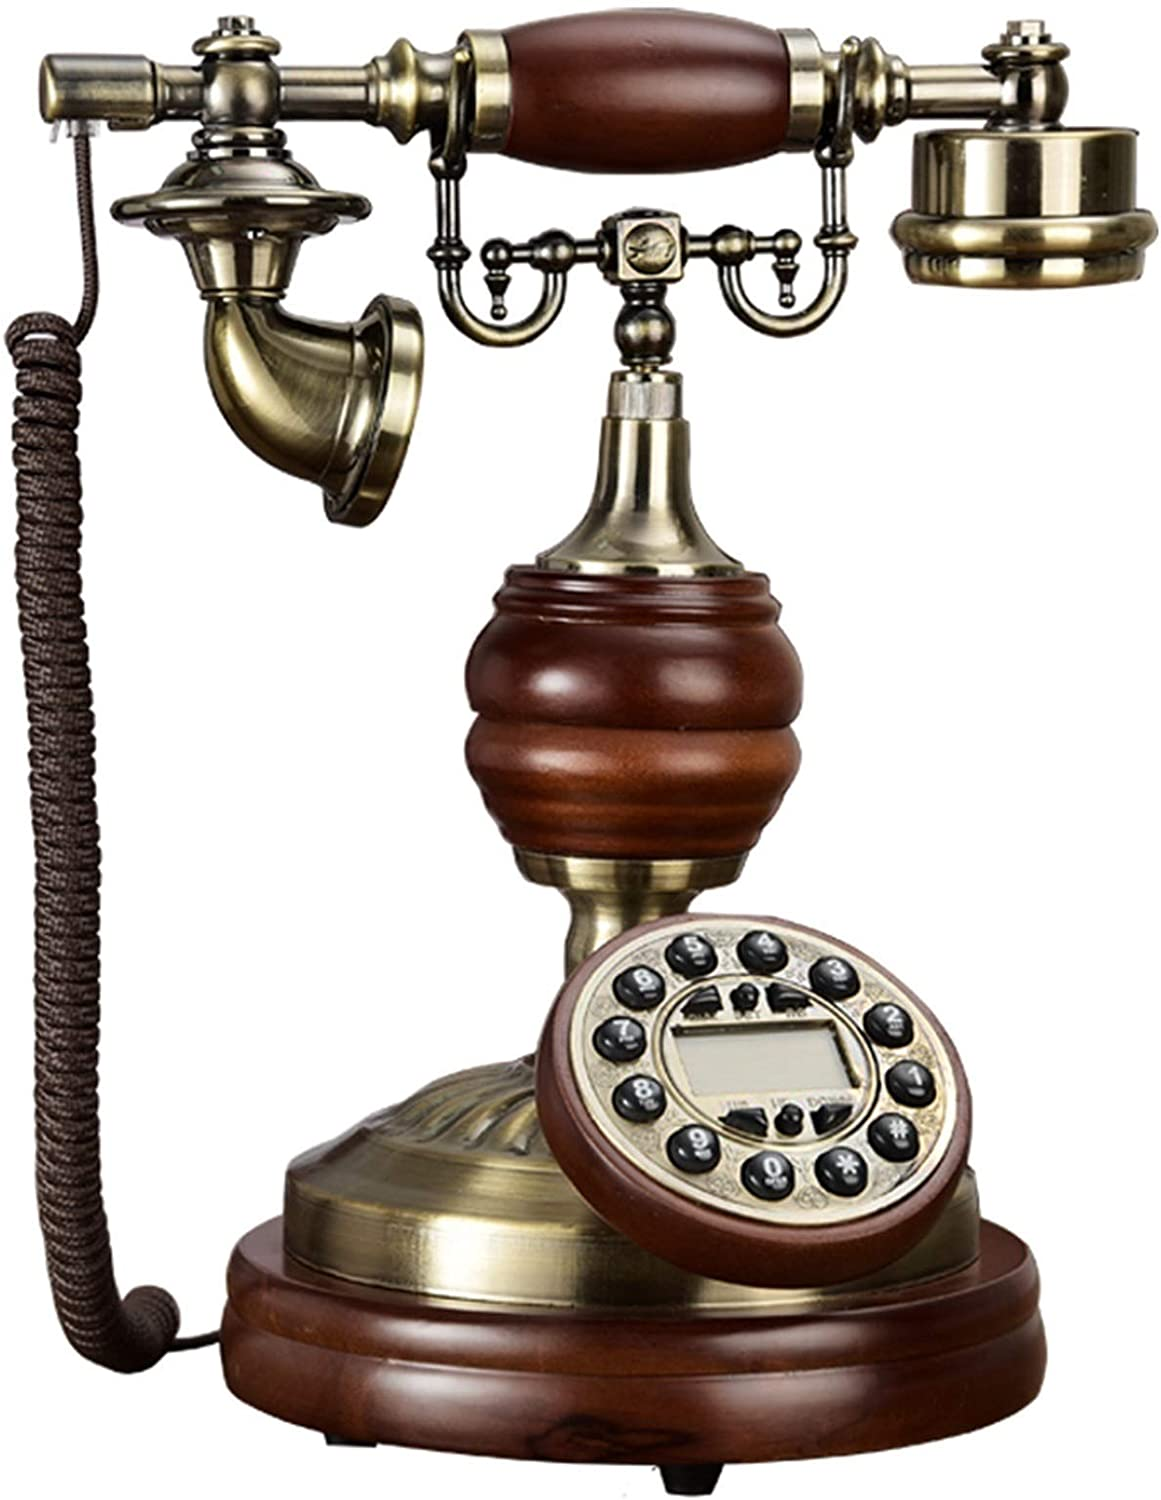 Outlet sale feature Limited time for free shipping ZHENGYU Vintage Decorate European Telephone L Type Retro